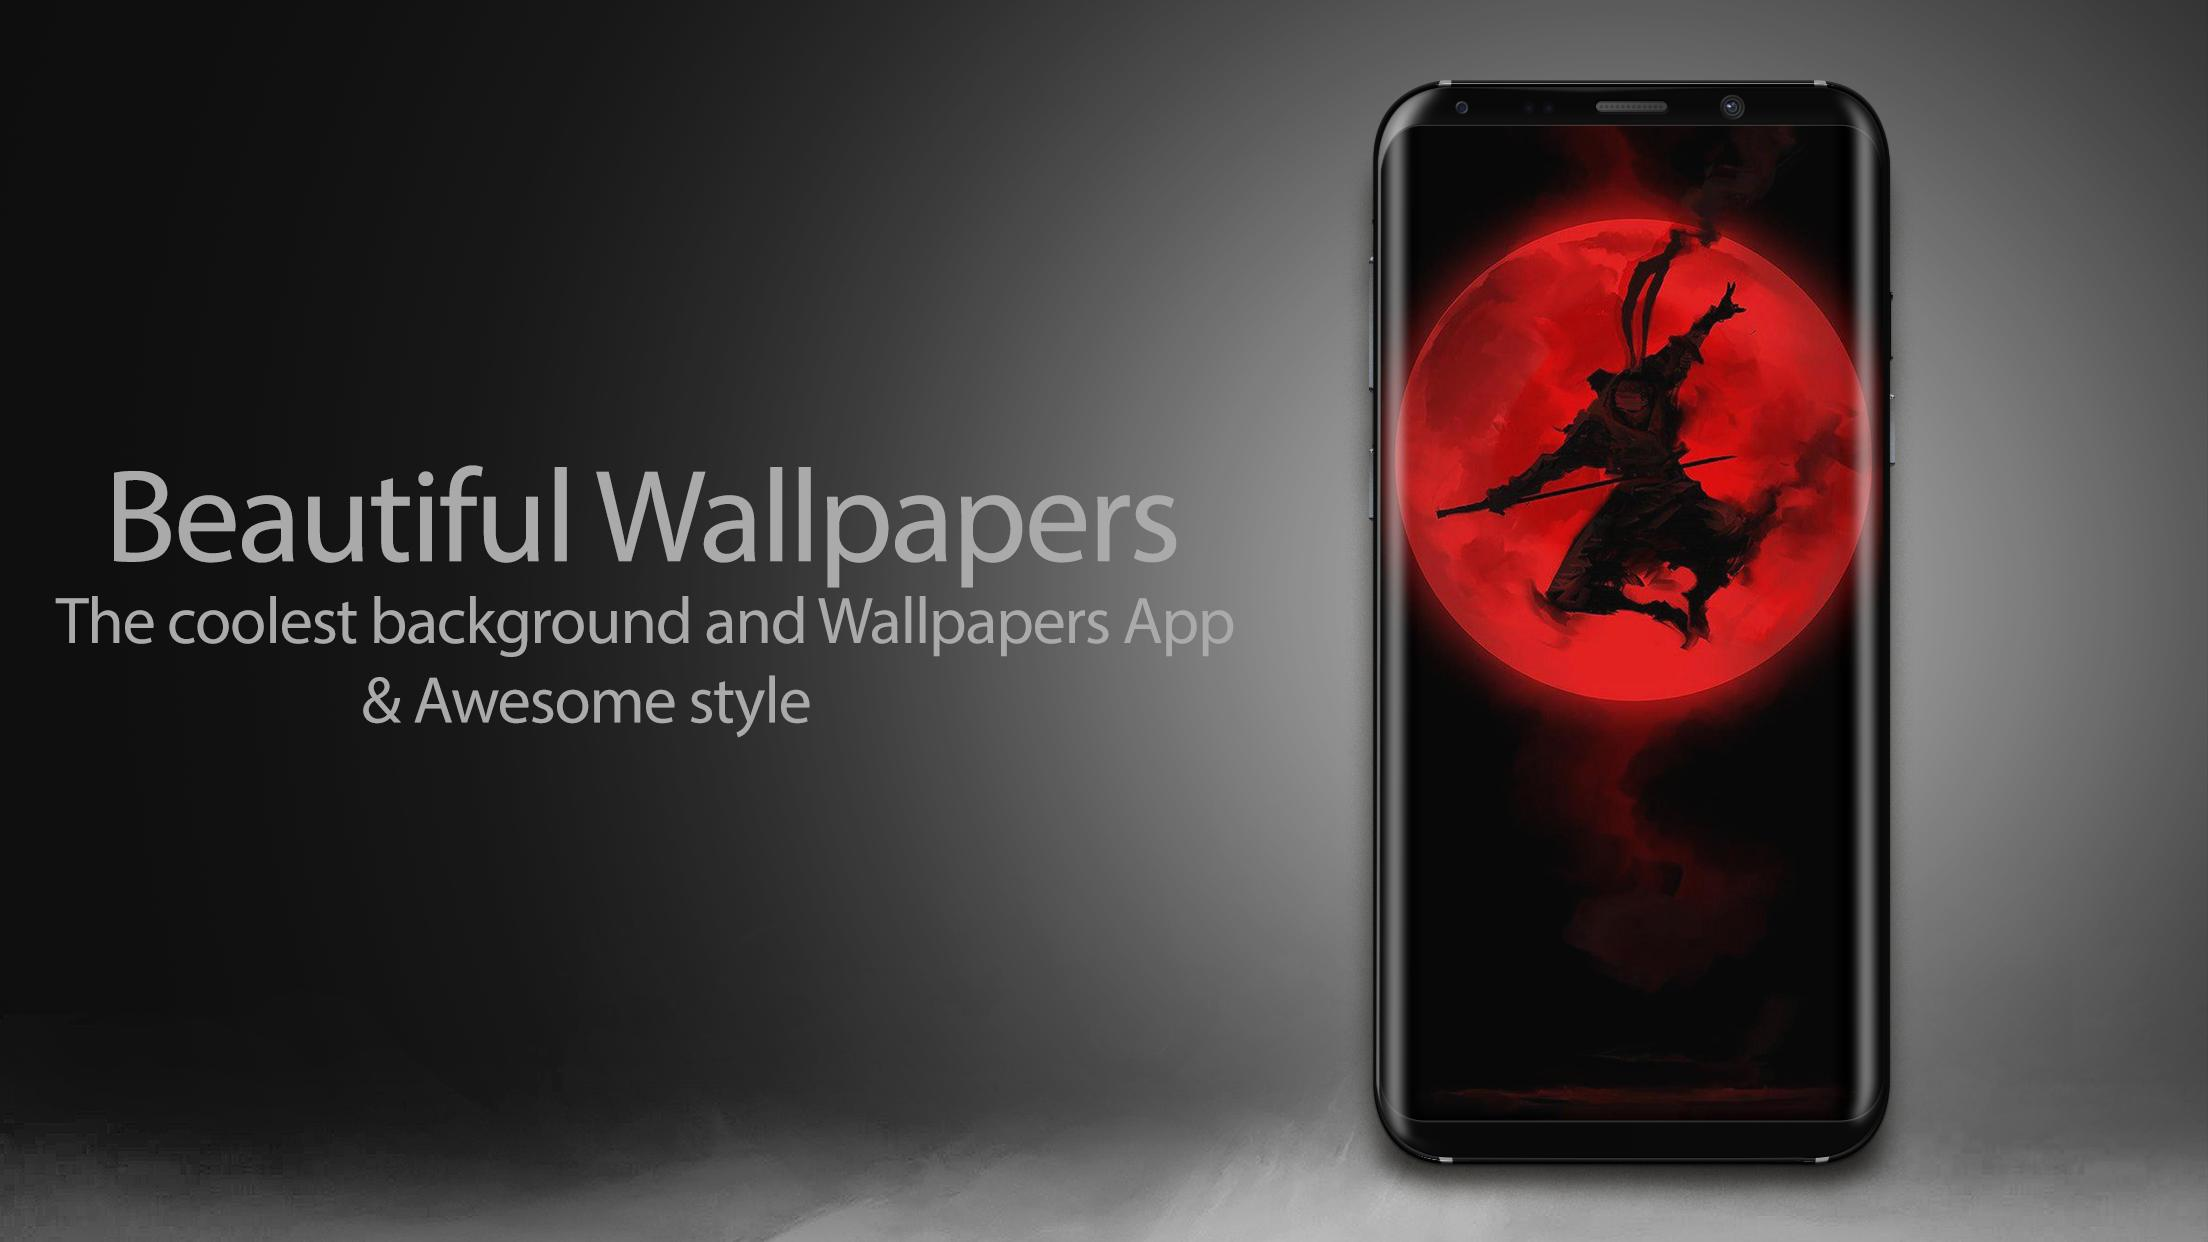 Oled Wallpapers Hd 4k For Android Apk Download